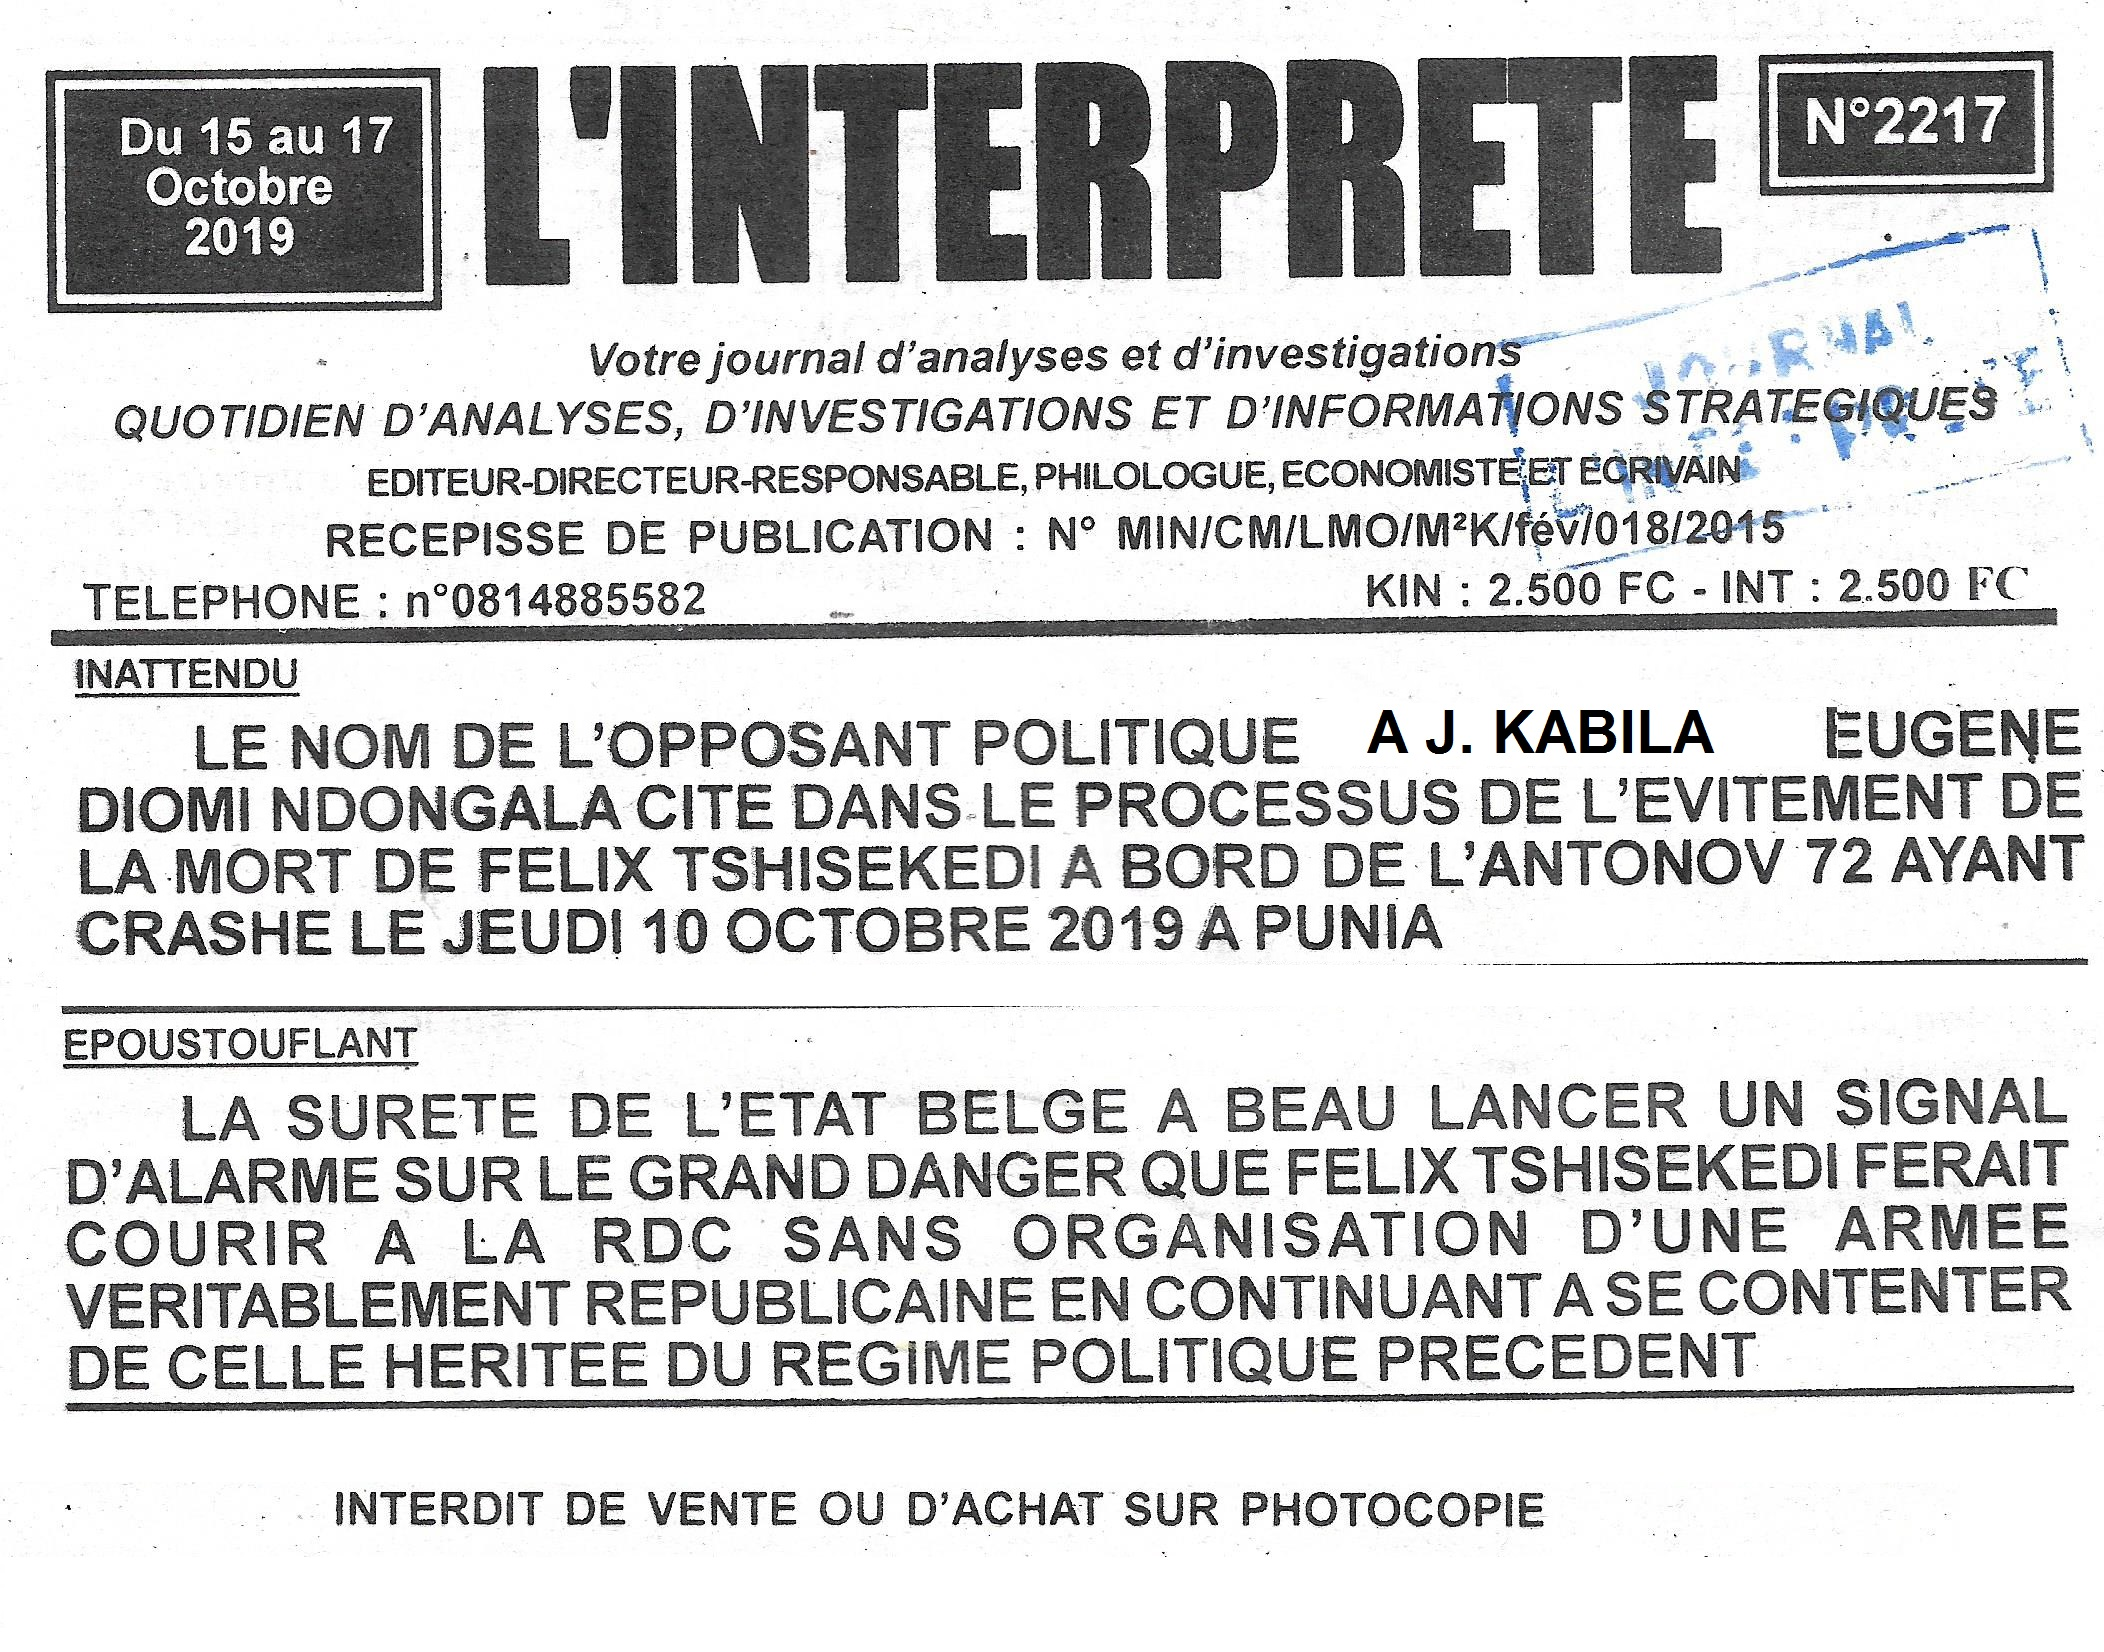 INTERPRETE 17.10 001.jpg